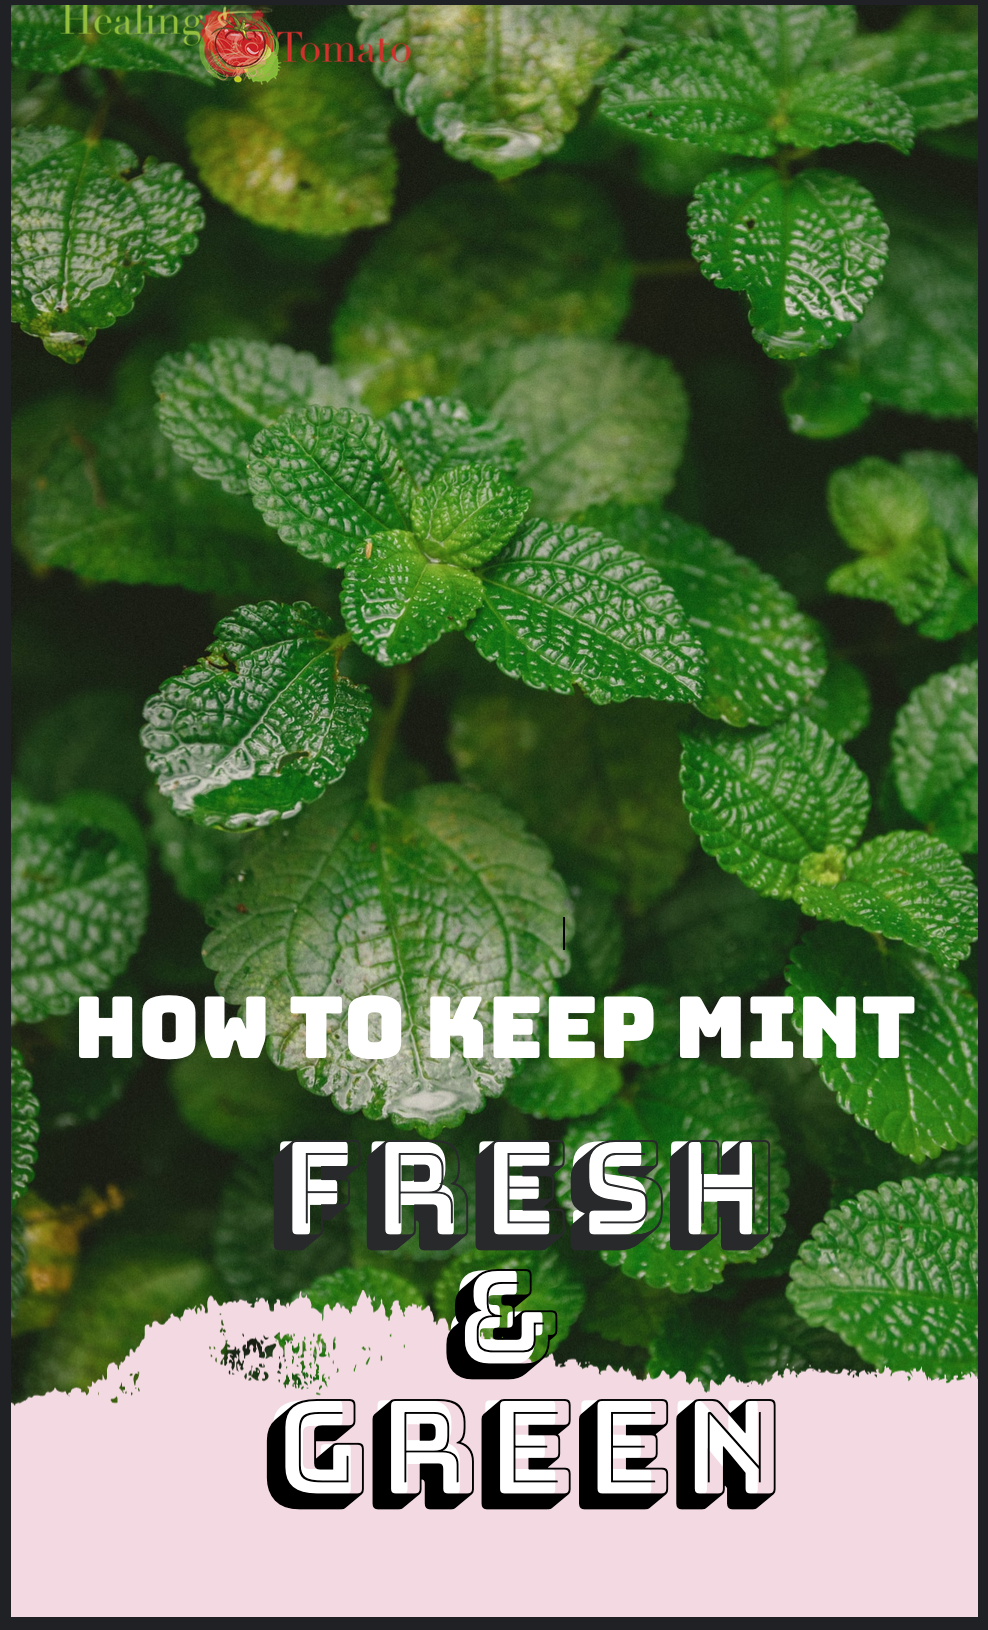 """Fresh mint in the background with the text overlay Saying """"How to keep mint fresh and green"""""""